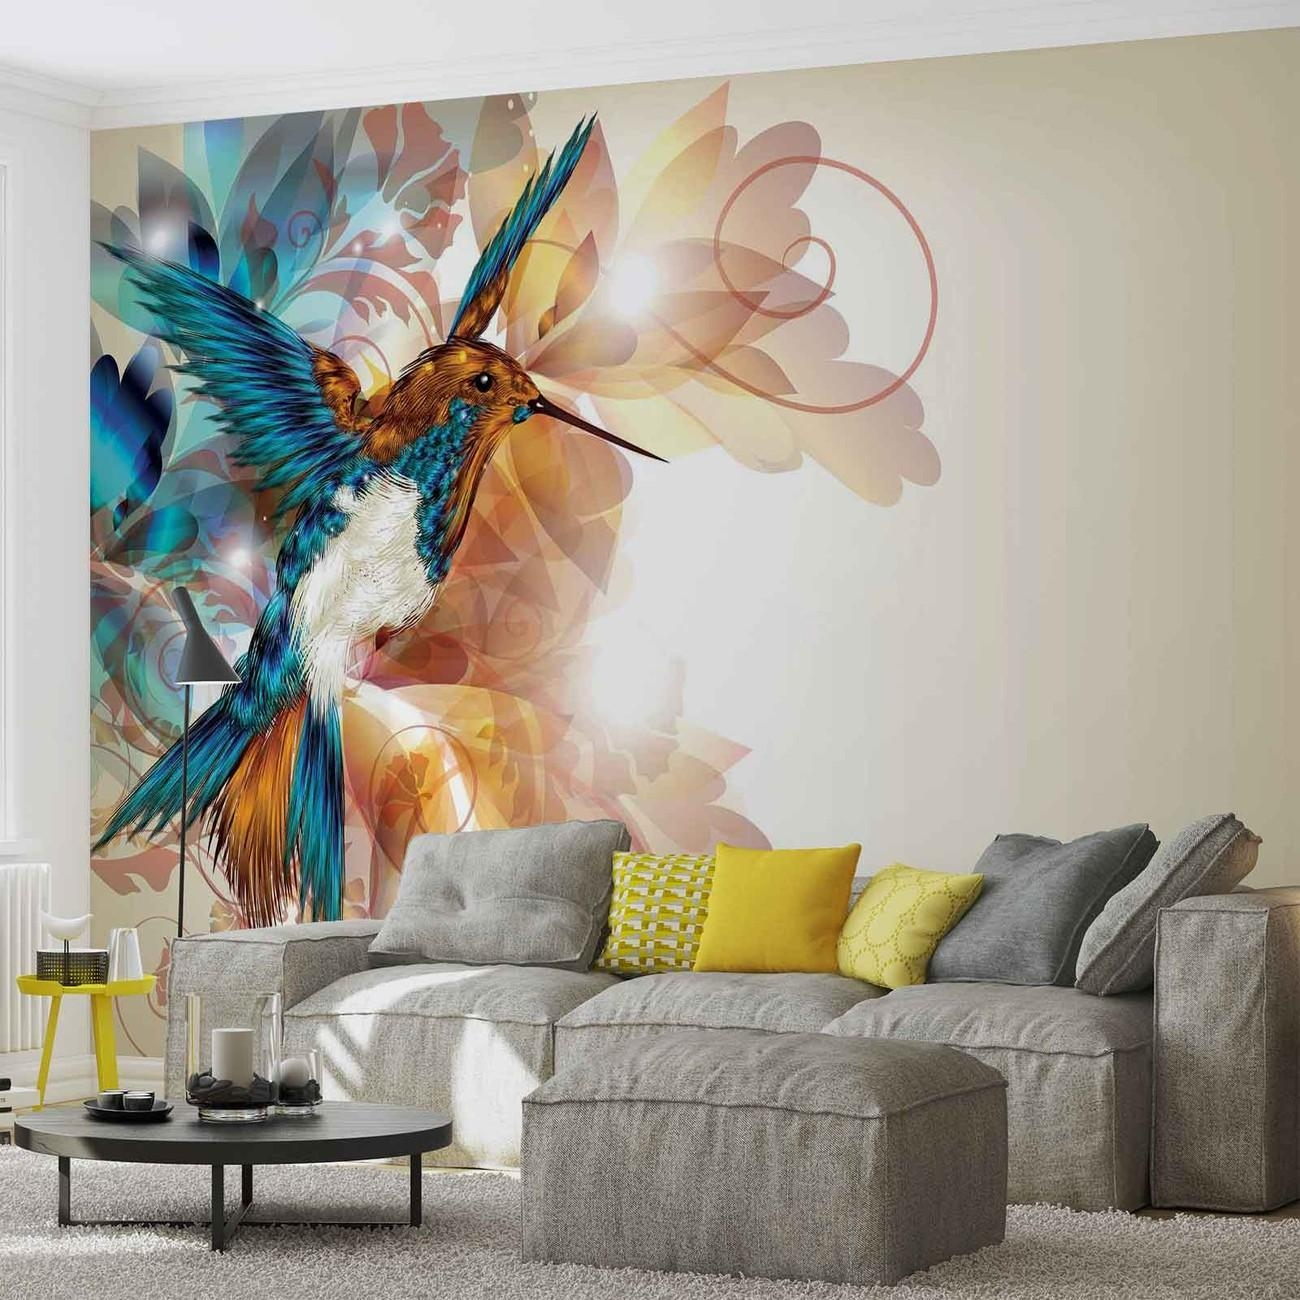 Birds Hummingbirds Flowers Abstract Wall Paper Mural | Buy At With Abstract Art Wall Murals (Image 4 of 20)